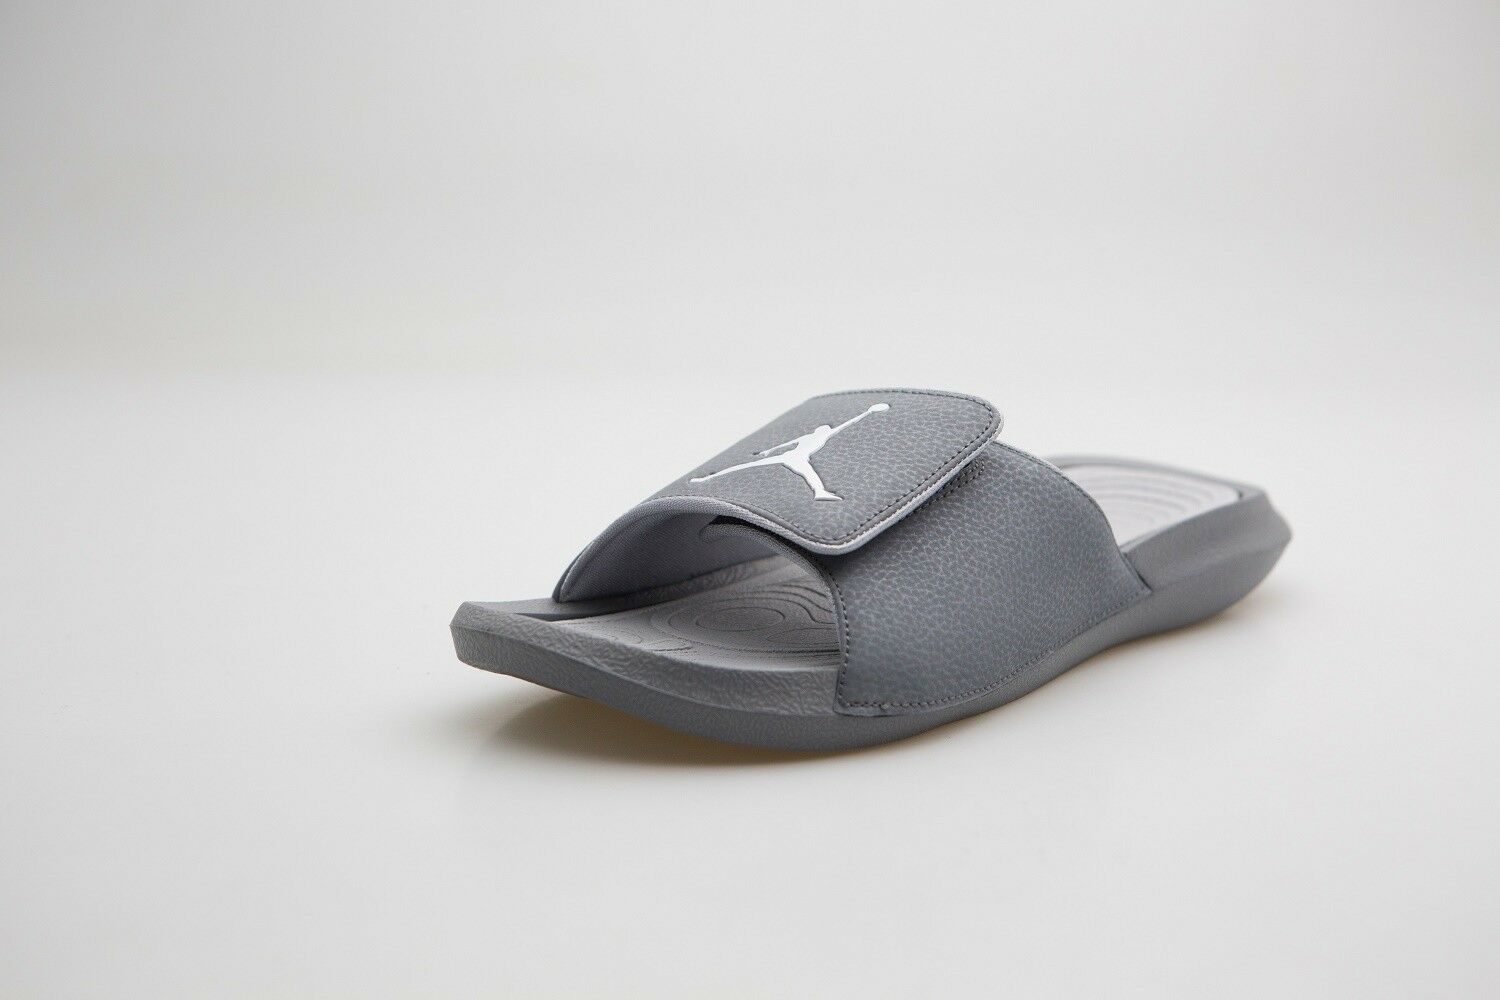 be10c03373bed6 881473-004 Jordan Men Hydro 6 Slide Cool Grey Wolf Grey Grey Grey 8bffb7